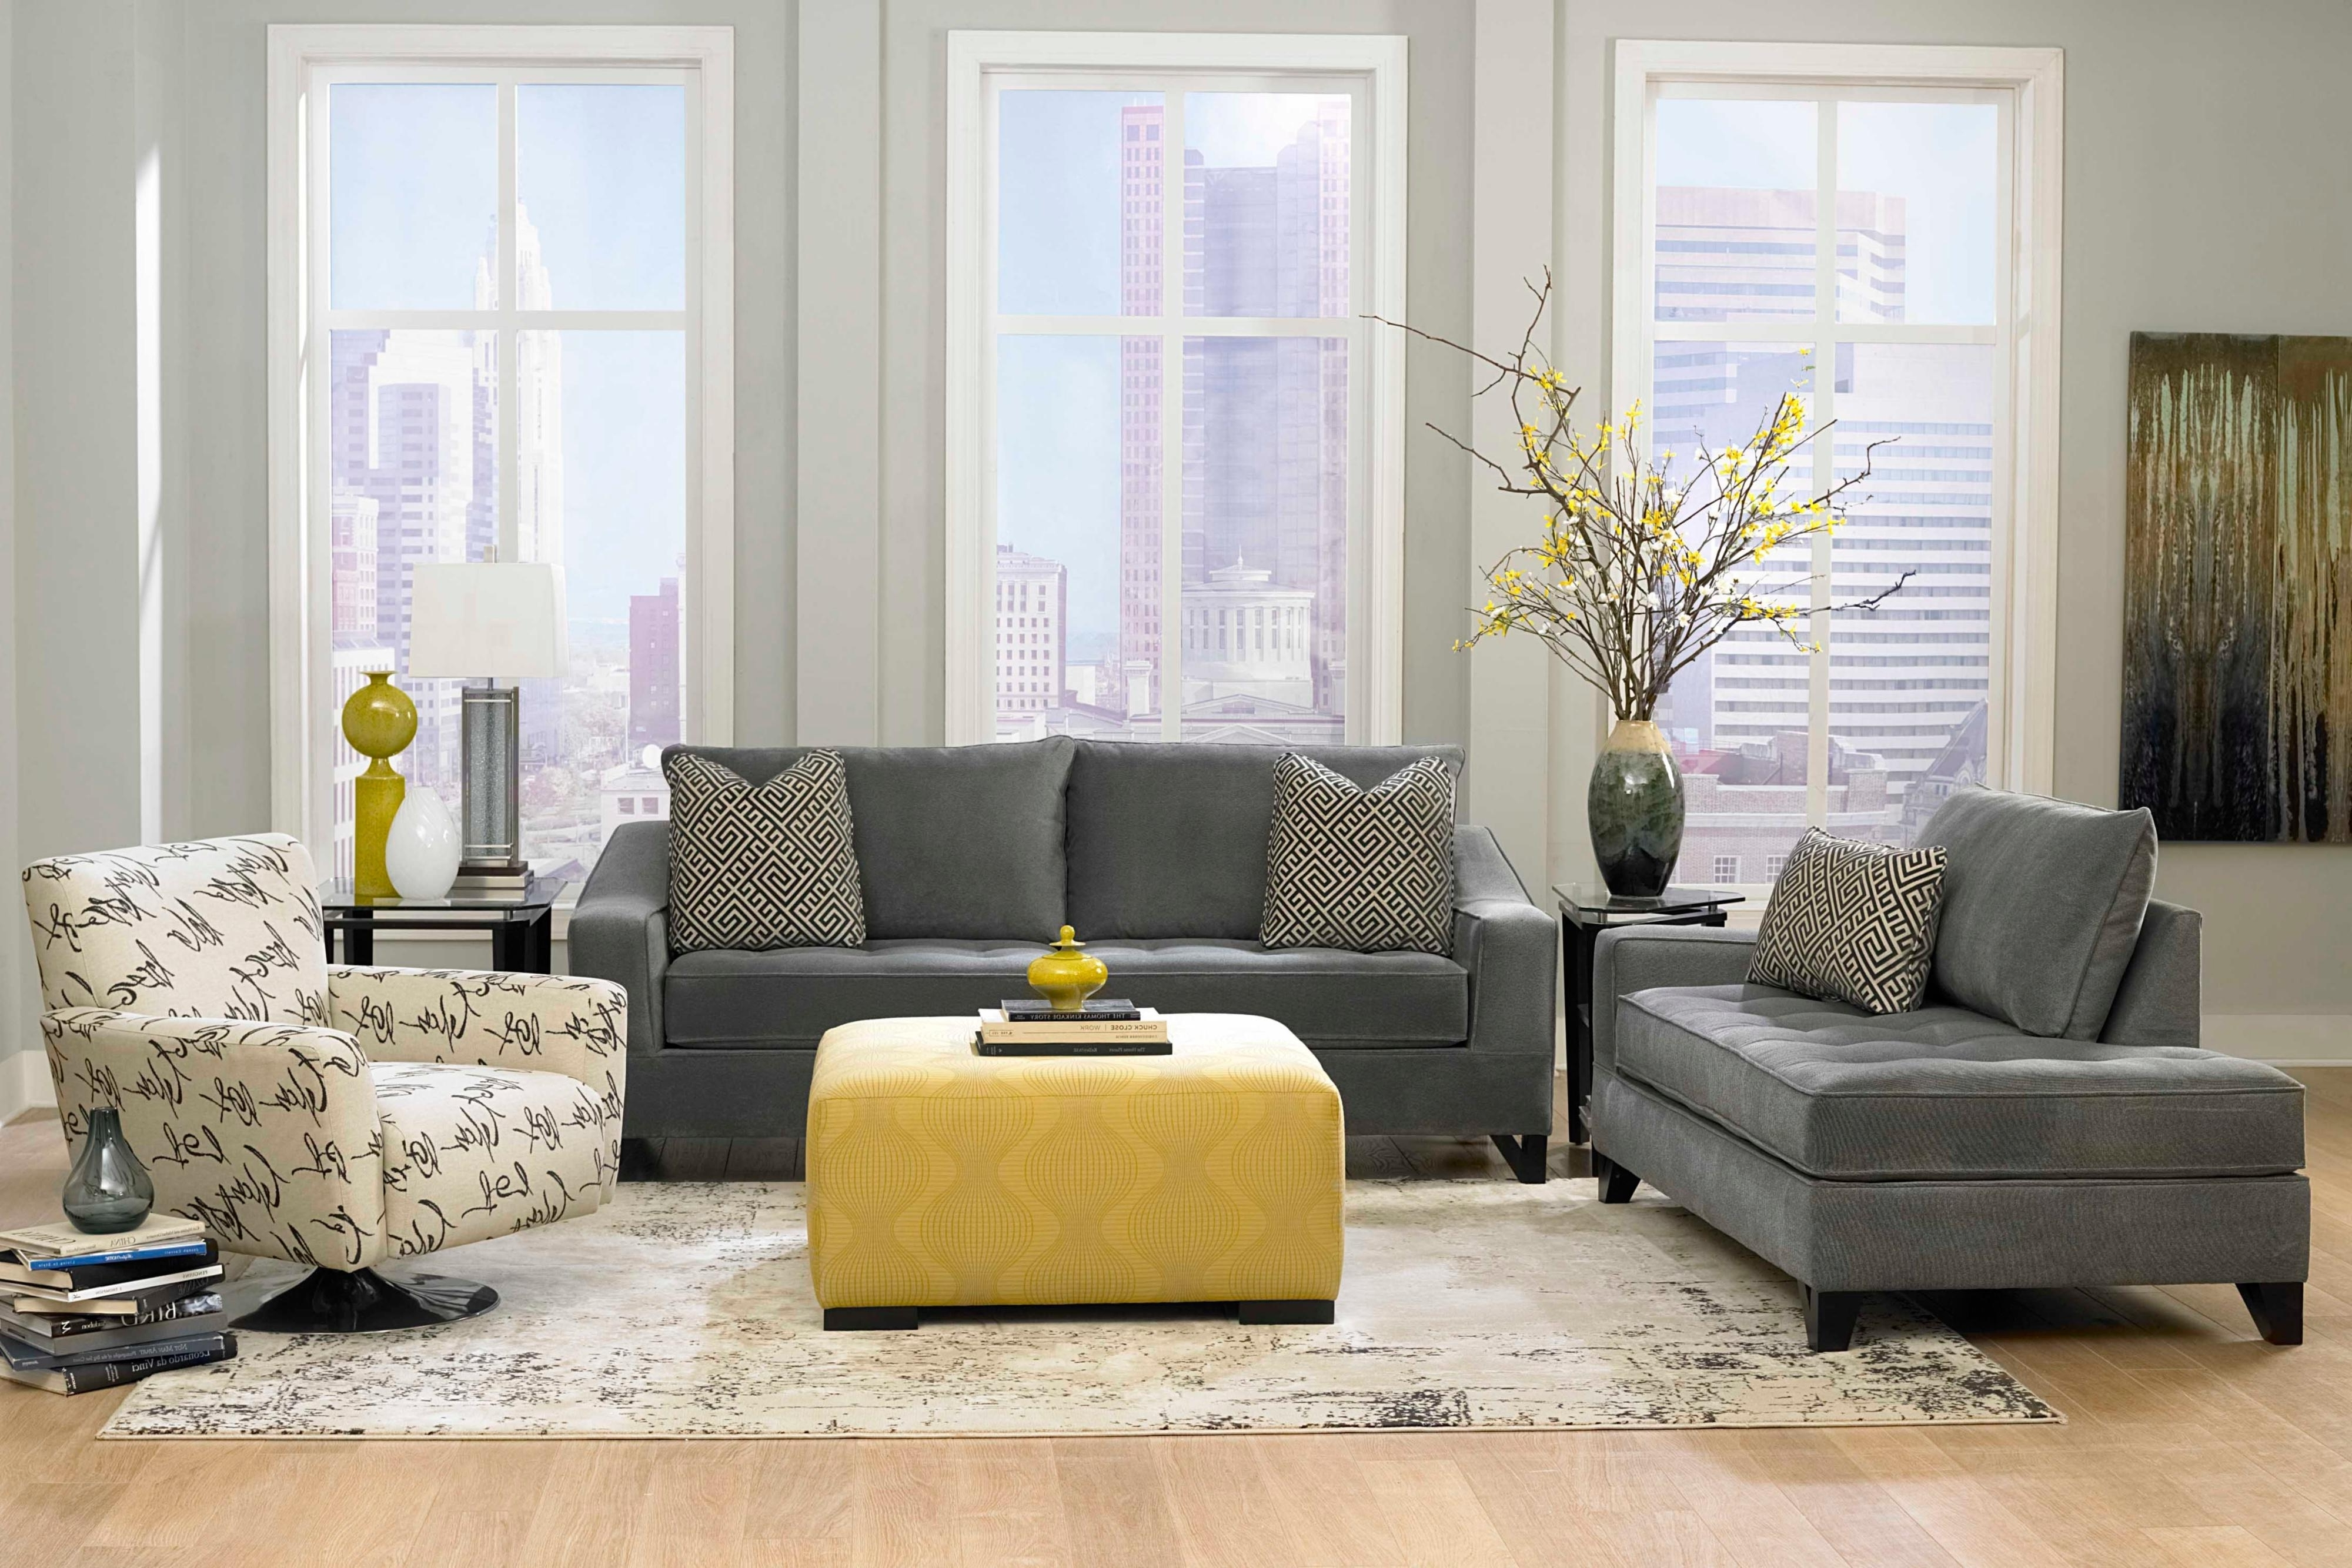 Newest Uncategorized : Yellow Sofas With Greatest Vintage Yellow Sofa Regarding Yellow Sofa Chairs (View 9 of 20)